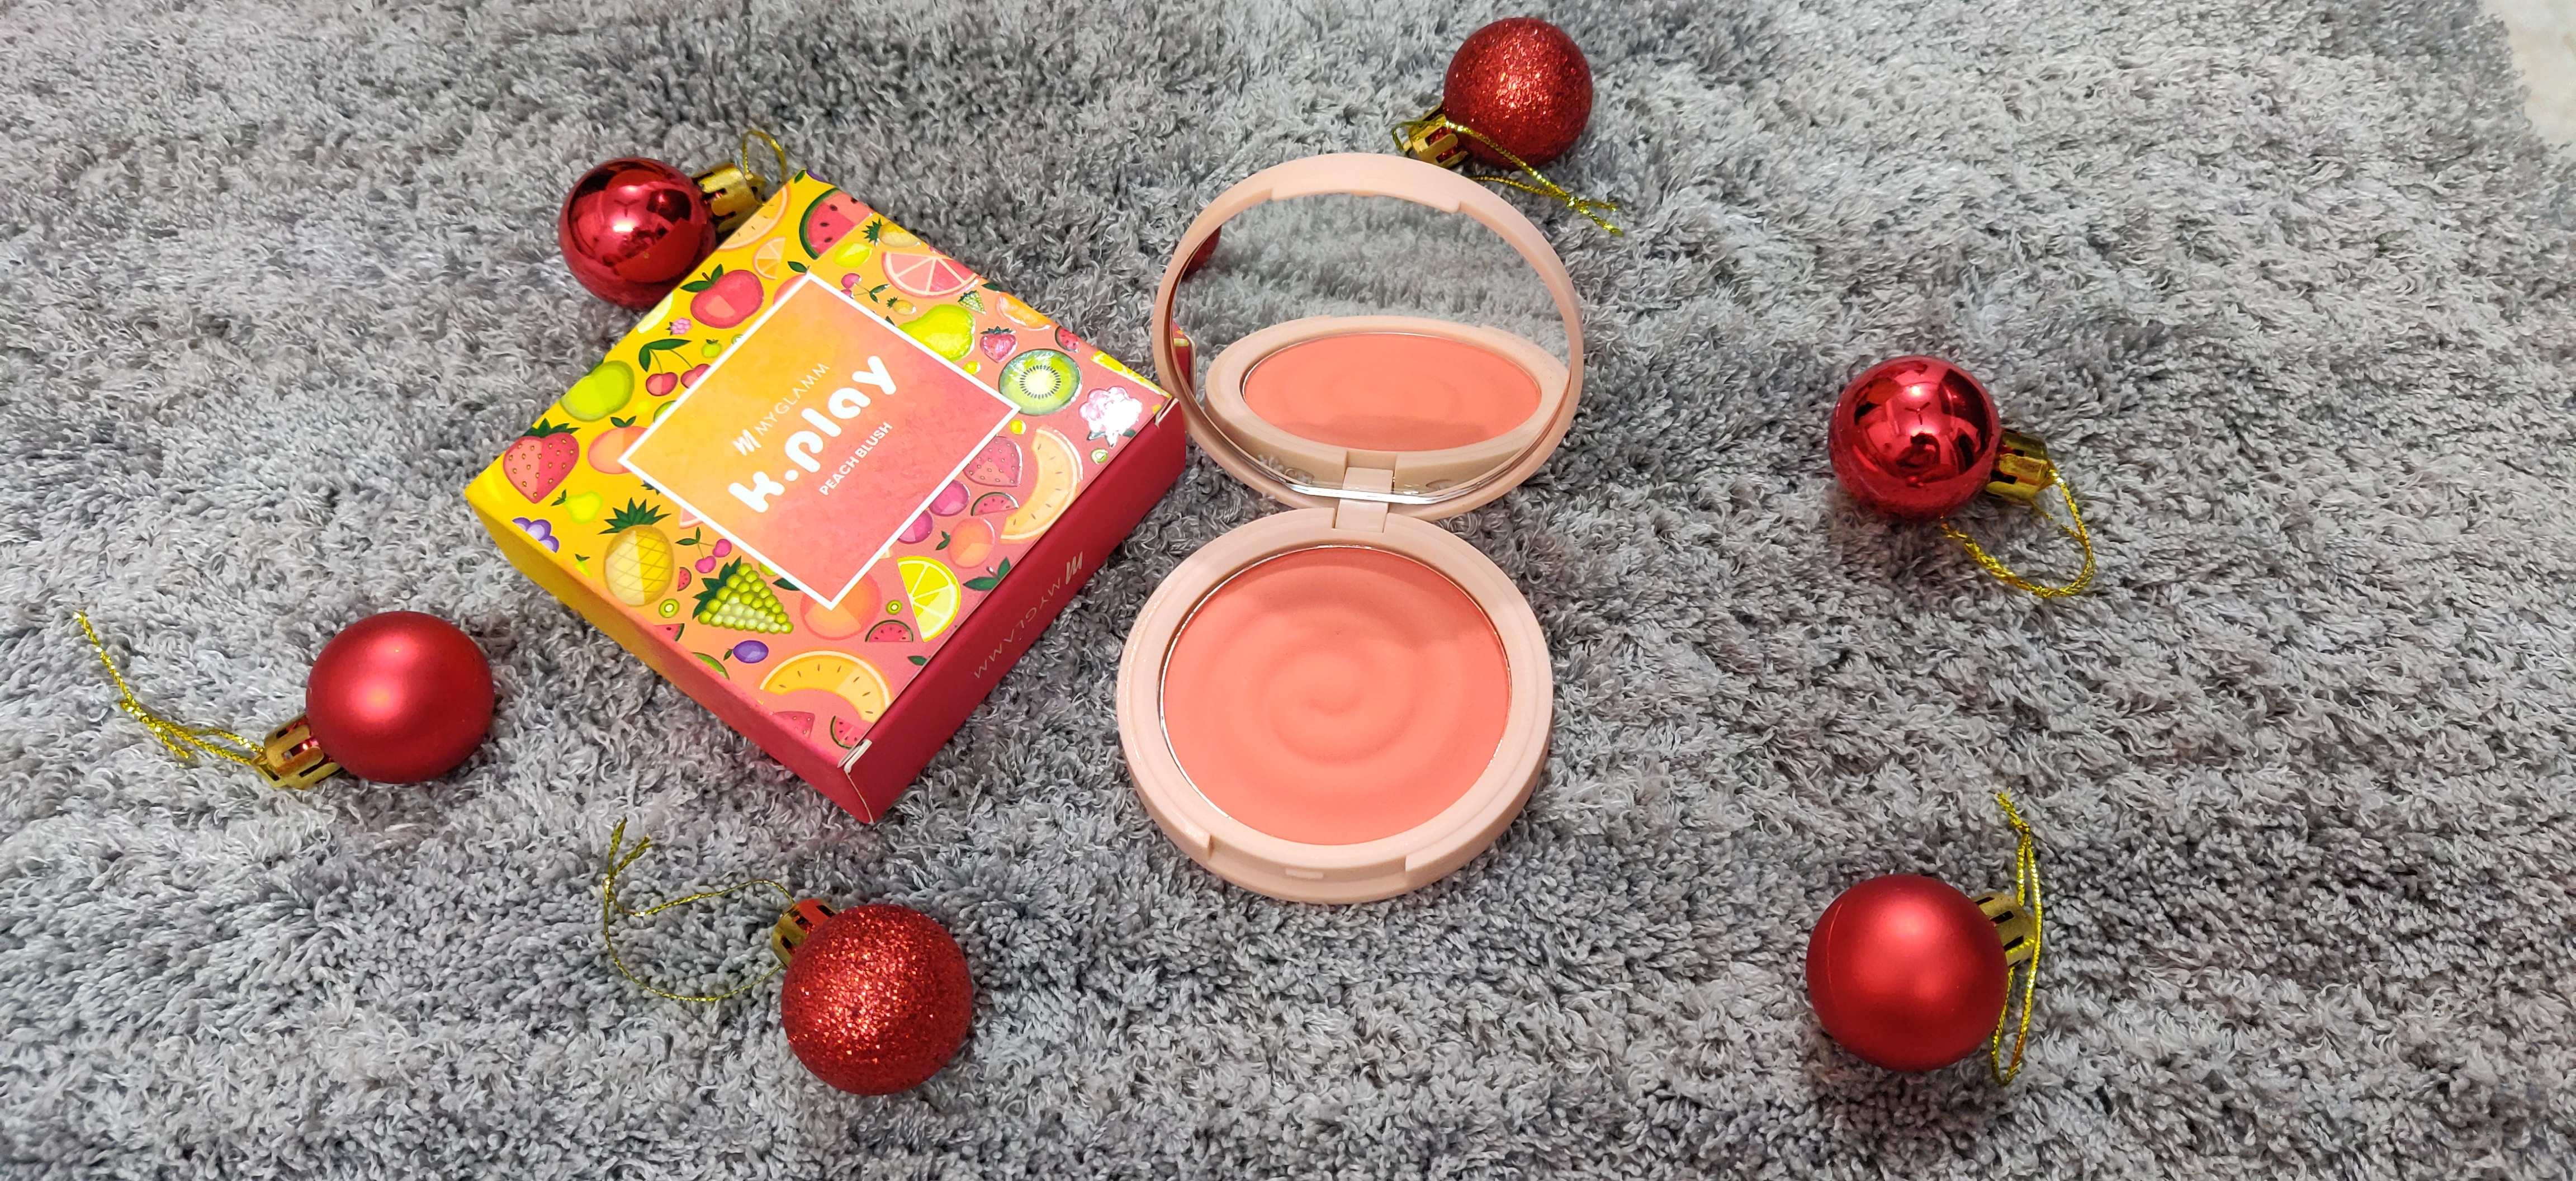 MyGlamm K.PLAY FLAVOURED BLUSH – SWEET PEACH-Highly Pigmented-By mahek_36@hotmail.com